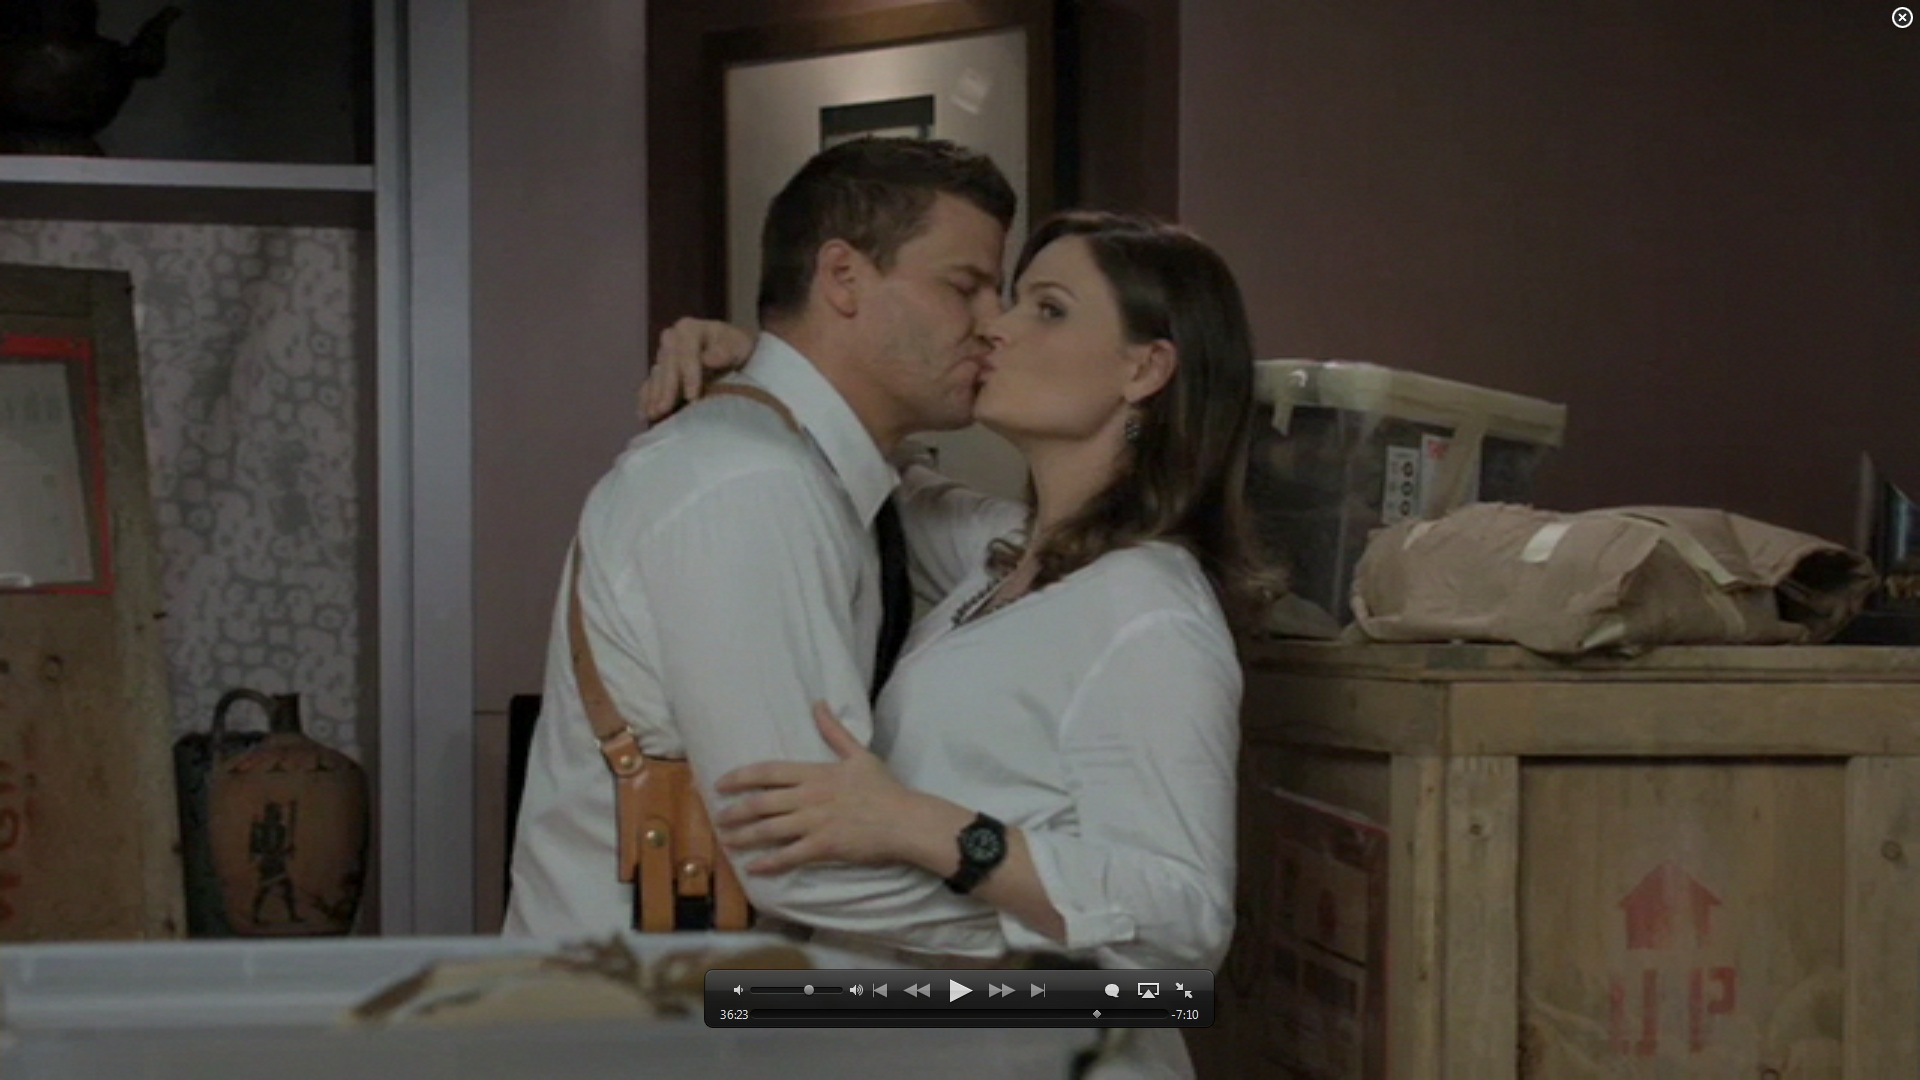 7x01 kiss booth and bones image 26582129 fanpop